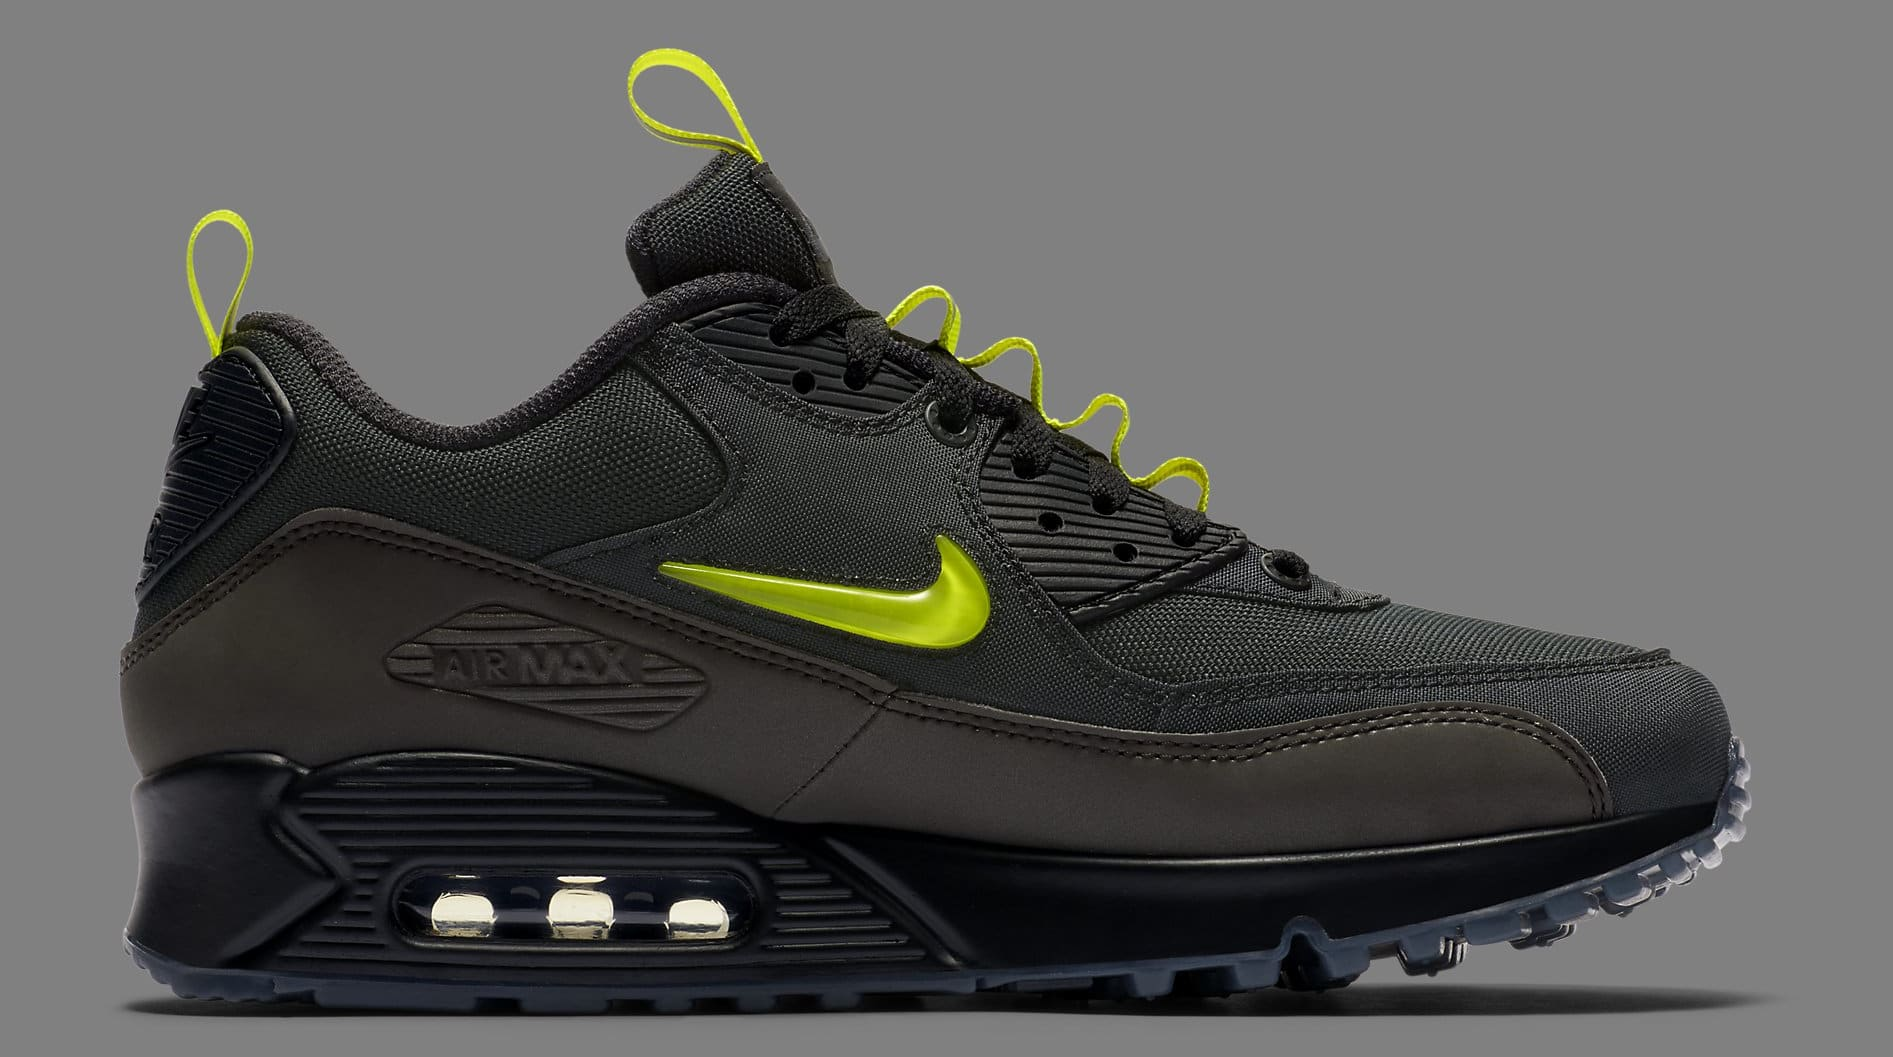 the-basement-nike-air-max-90-manchester-cu5967-001-medial